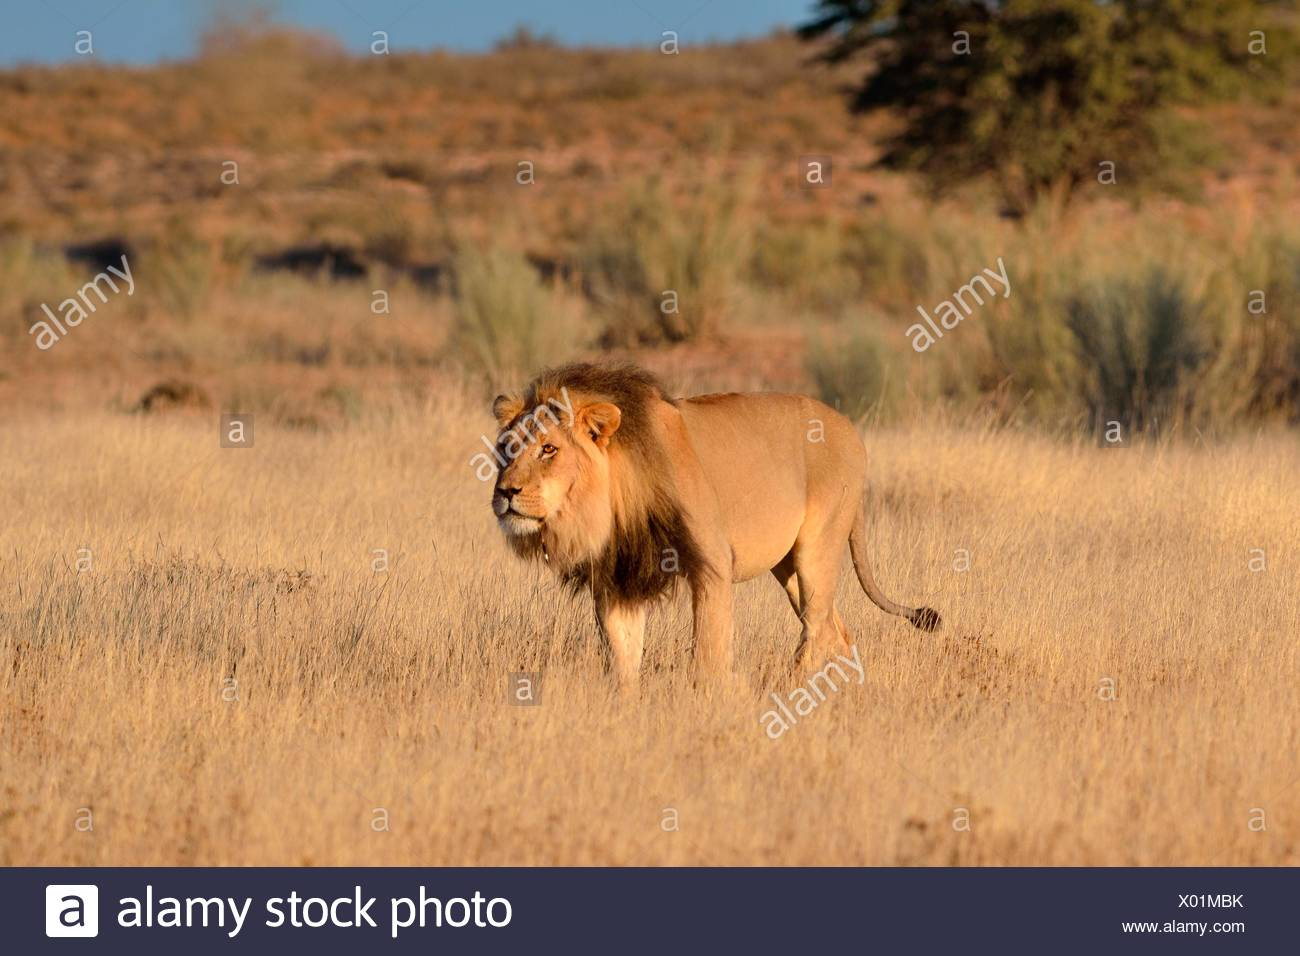 Lion (Panthera leo), male, walking through the grass, with the spine of a porcupine on his neck, Kgalagadi Transfrontier Park - Stock Image